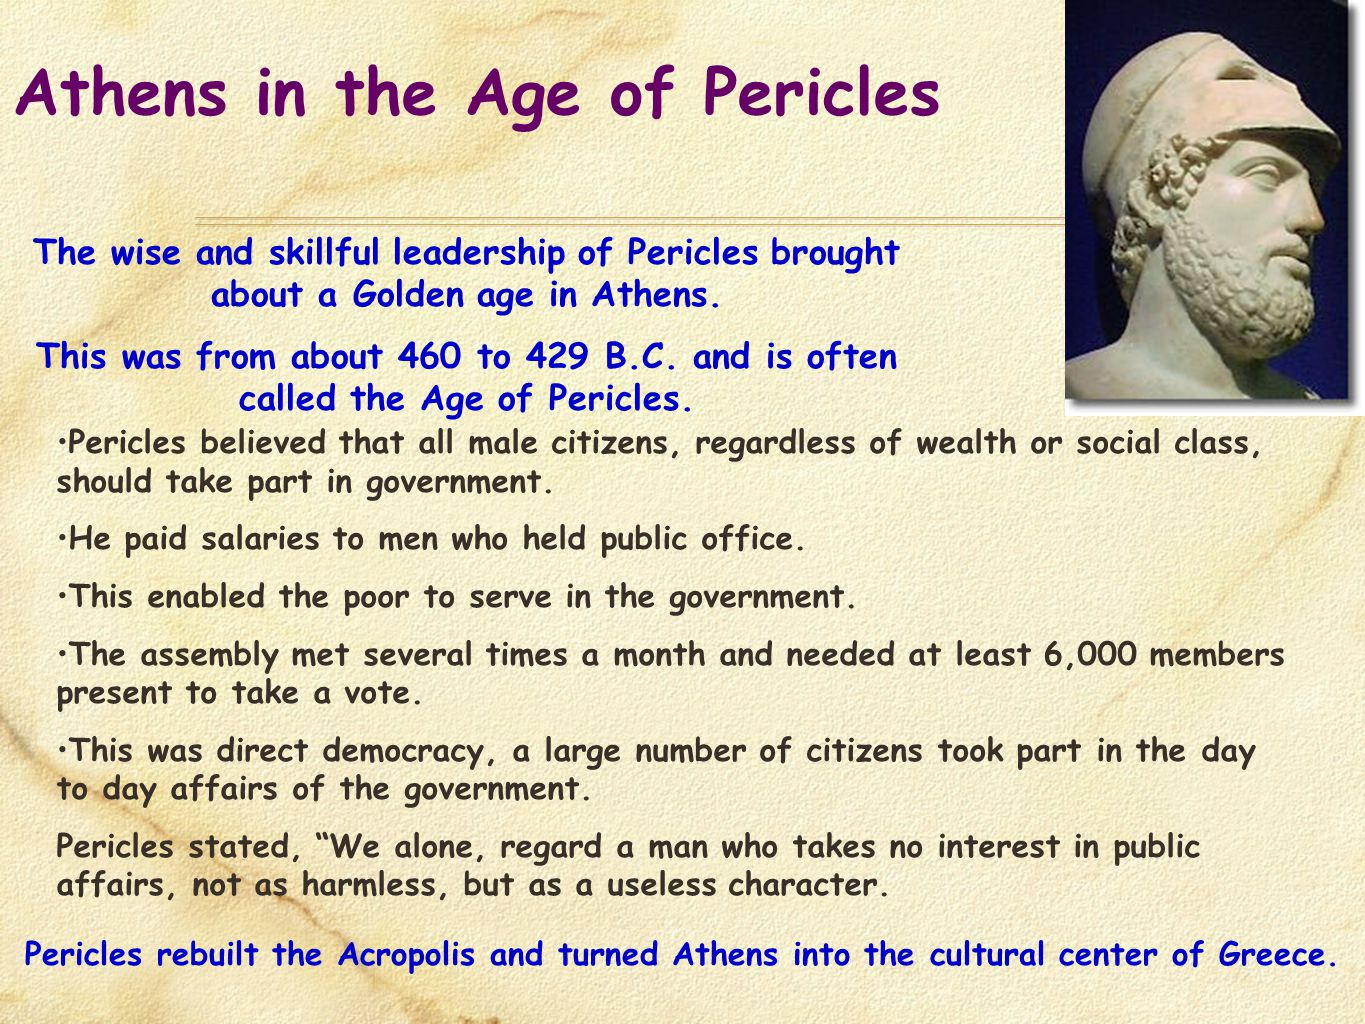 Athens in the Age of Pericles The wise and skillful leadership of Pericles brought about a Golden age in Athens. This was from about 460 to 429 B.C. a